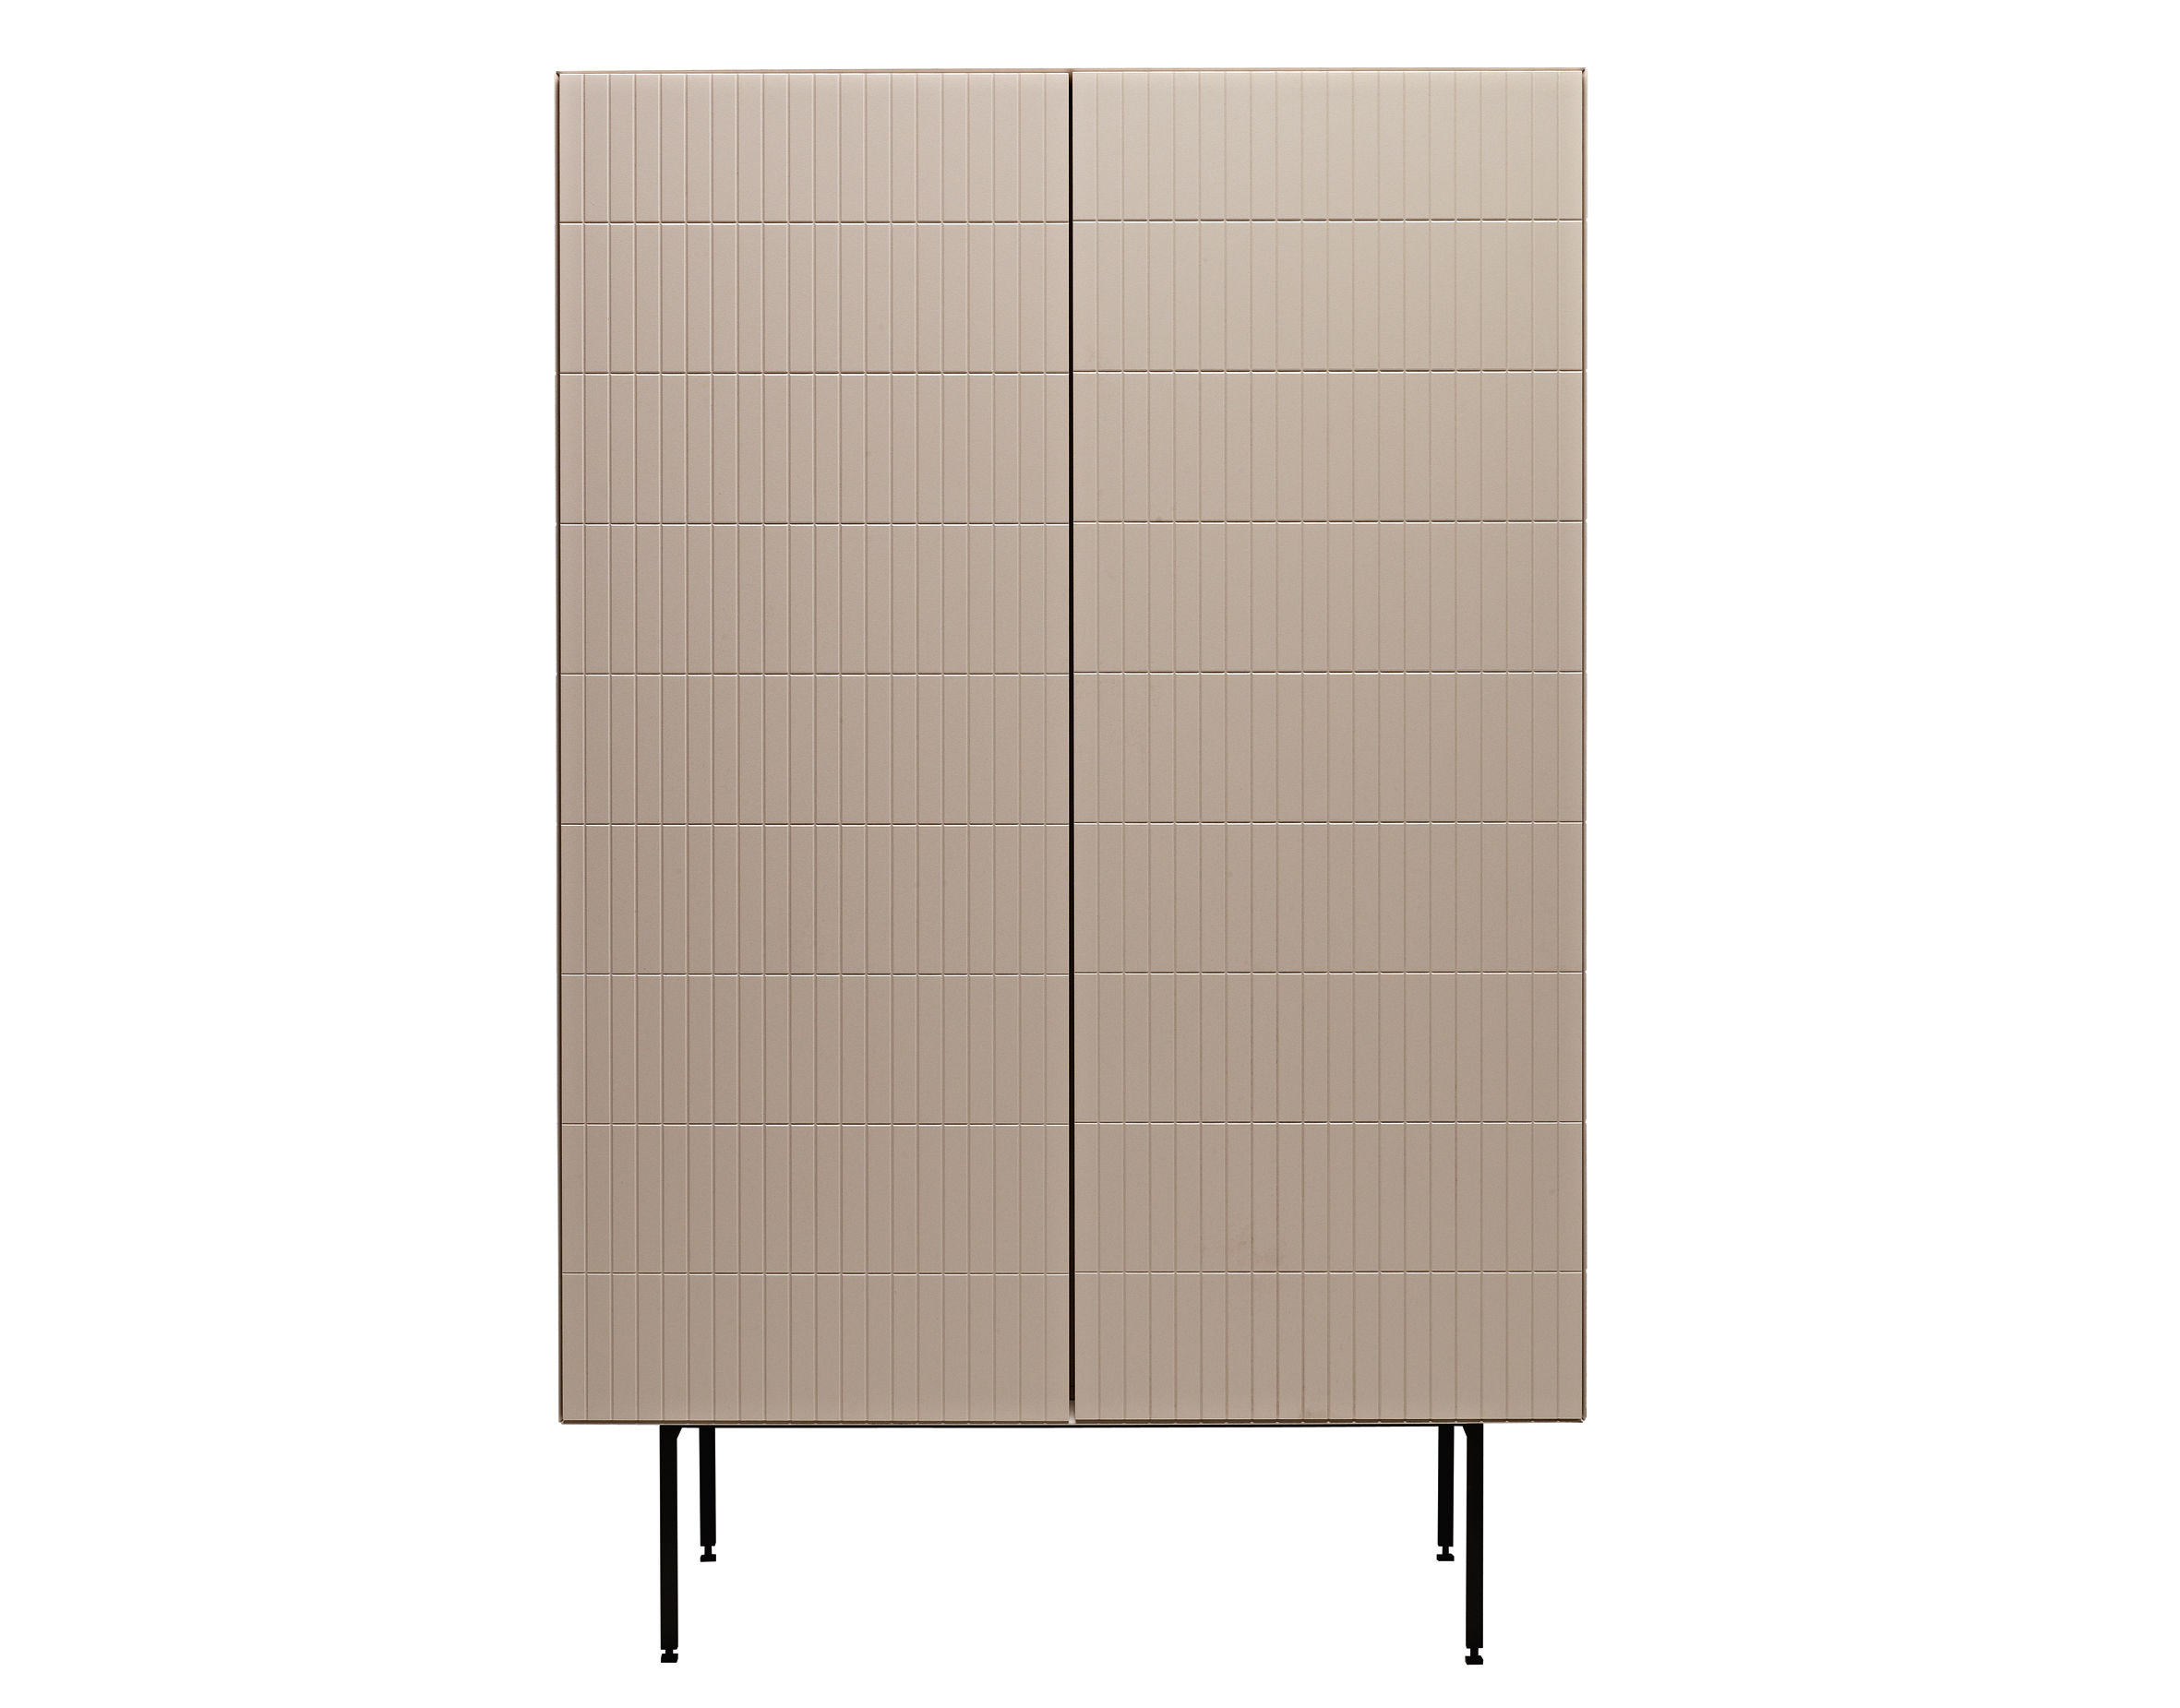 armoire toshi mod le n 5 sur pieds l 91 x h 140 cm gris clair casamania. Black Bedroom Furniture Sets. Home Design Ideas